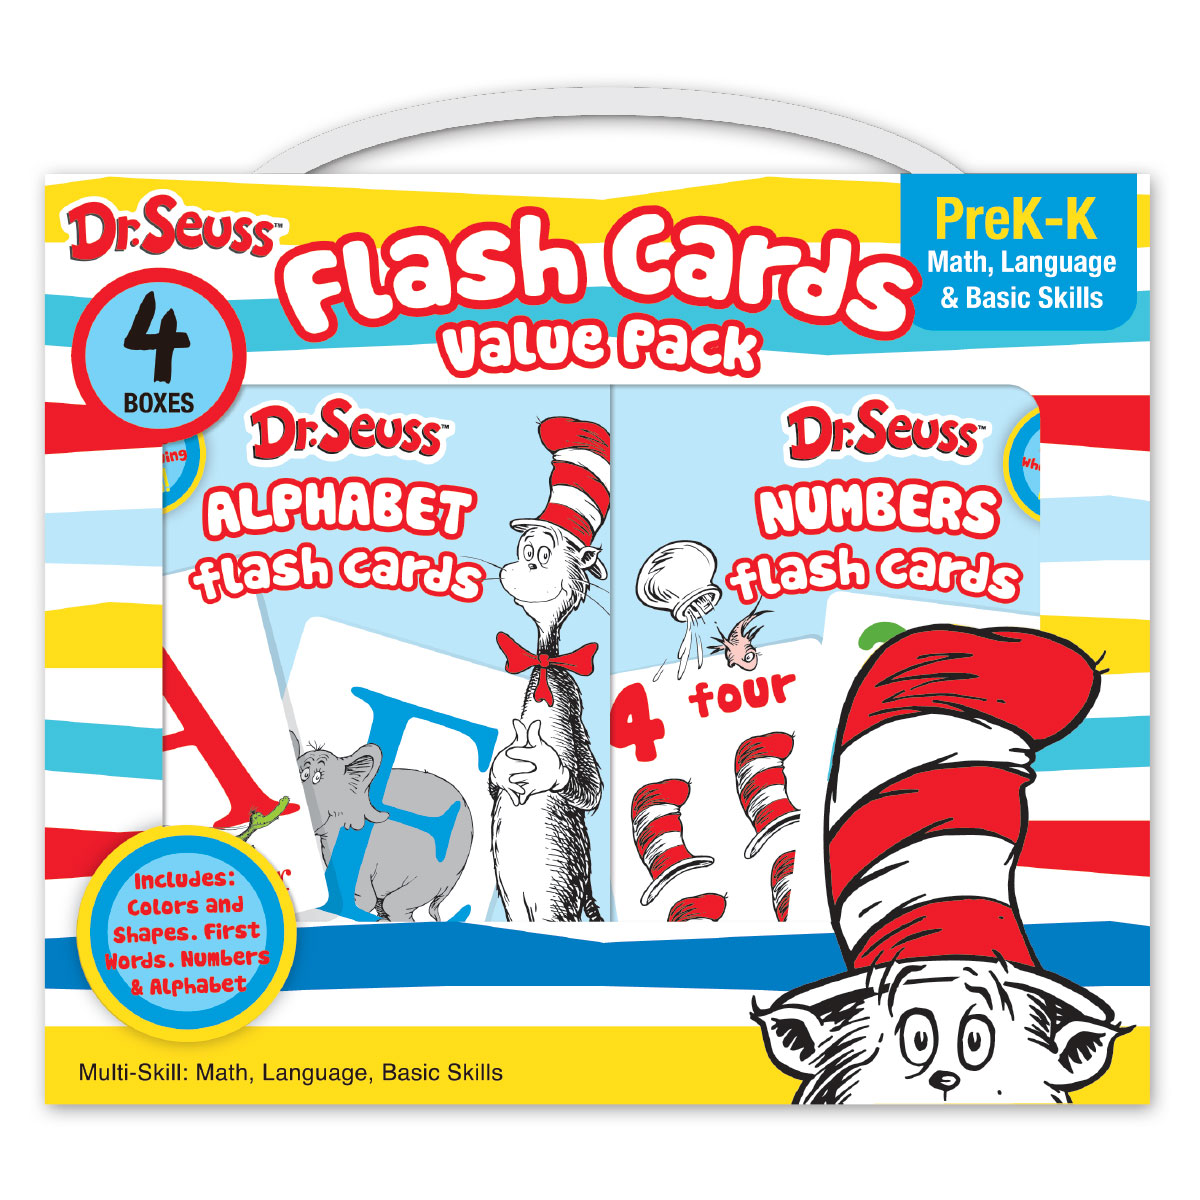 Dr. Seuss Flash Cards Value Pack